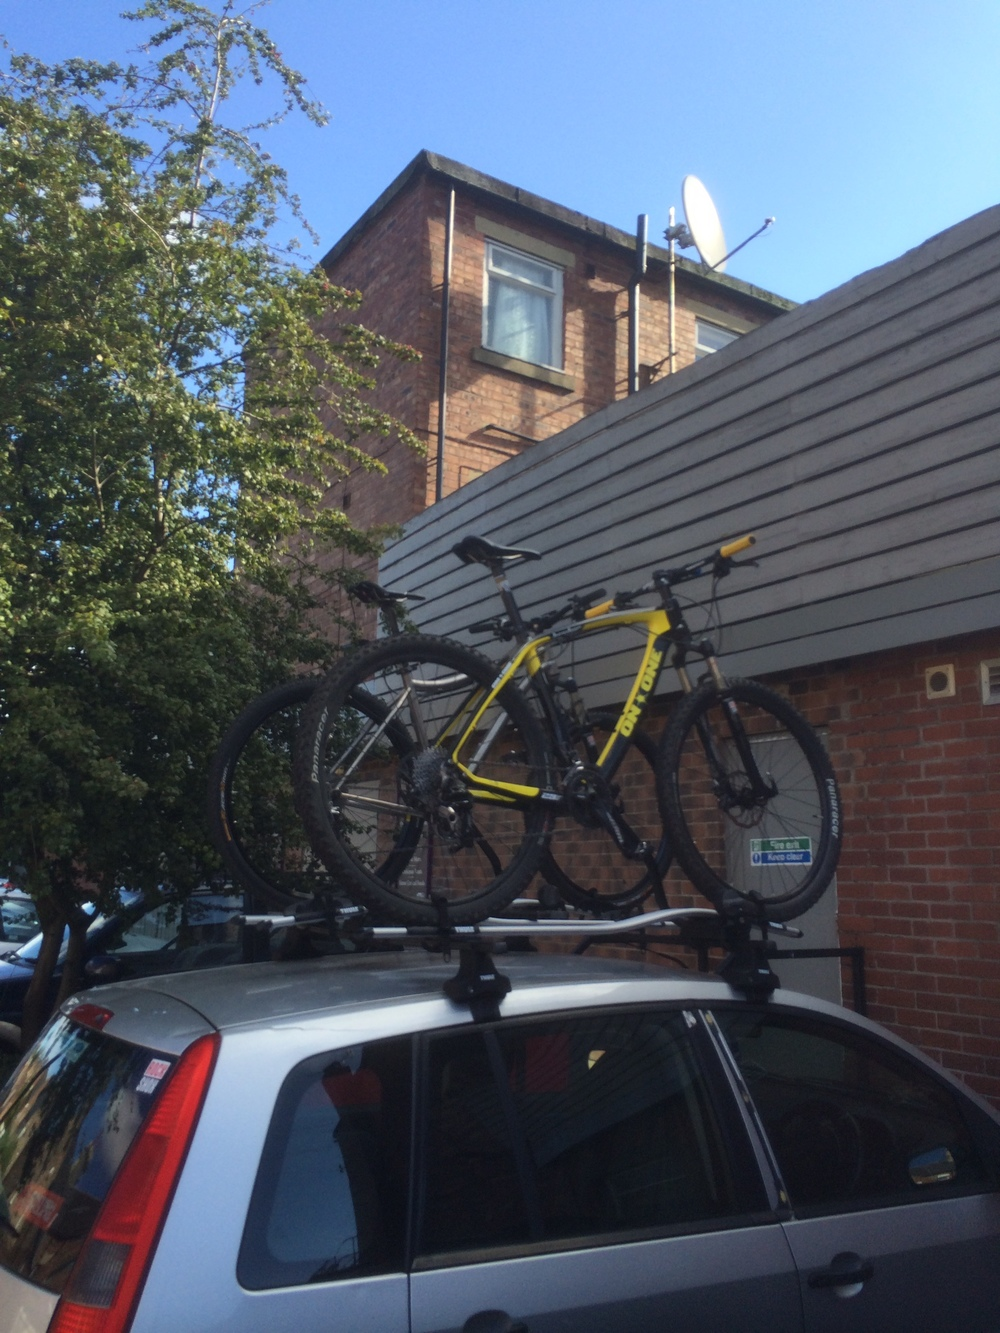 Yes, that's a Ford Fusion. Bikes and rack worth more than car. As it should be.